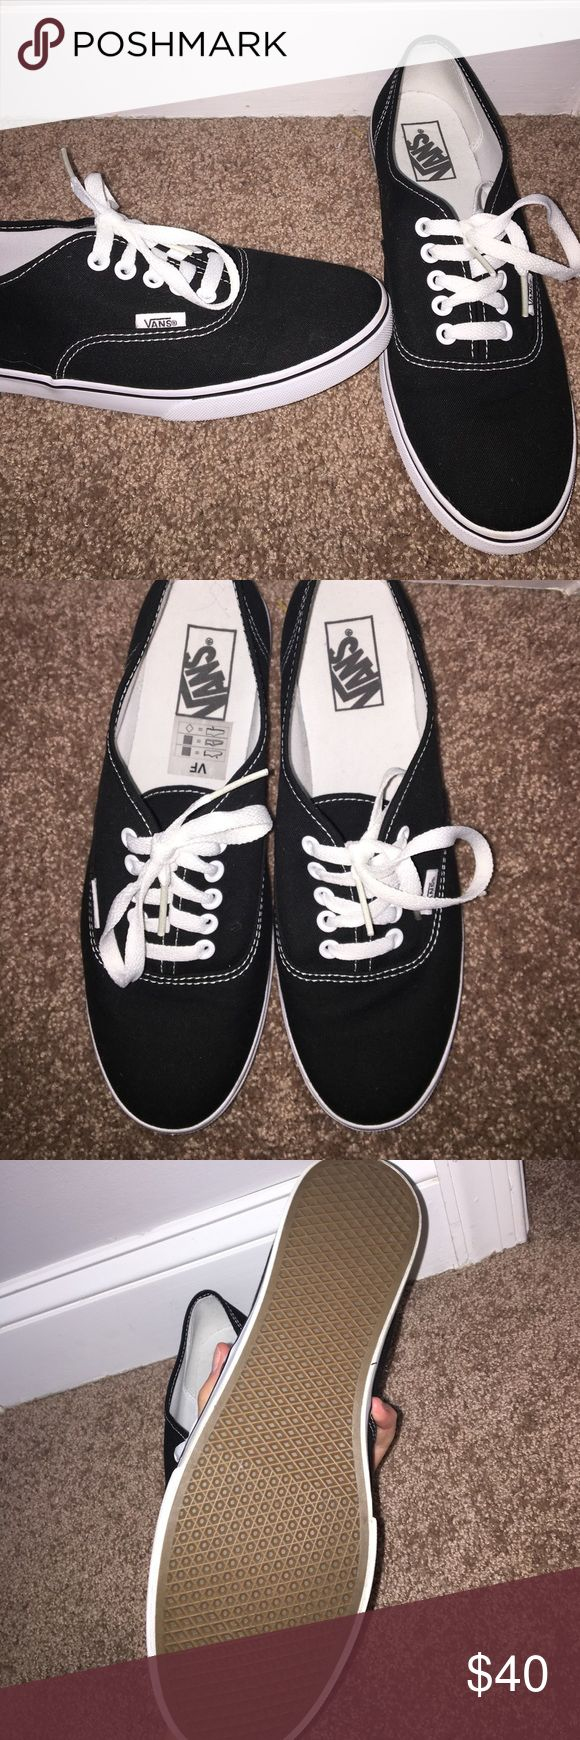 Black Vans Never worn, brand new black Vans! Women's 10, Men 8.5 Vans Shoes